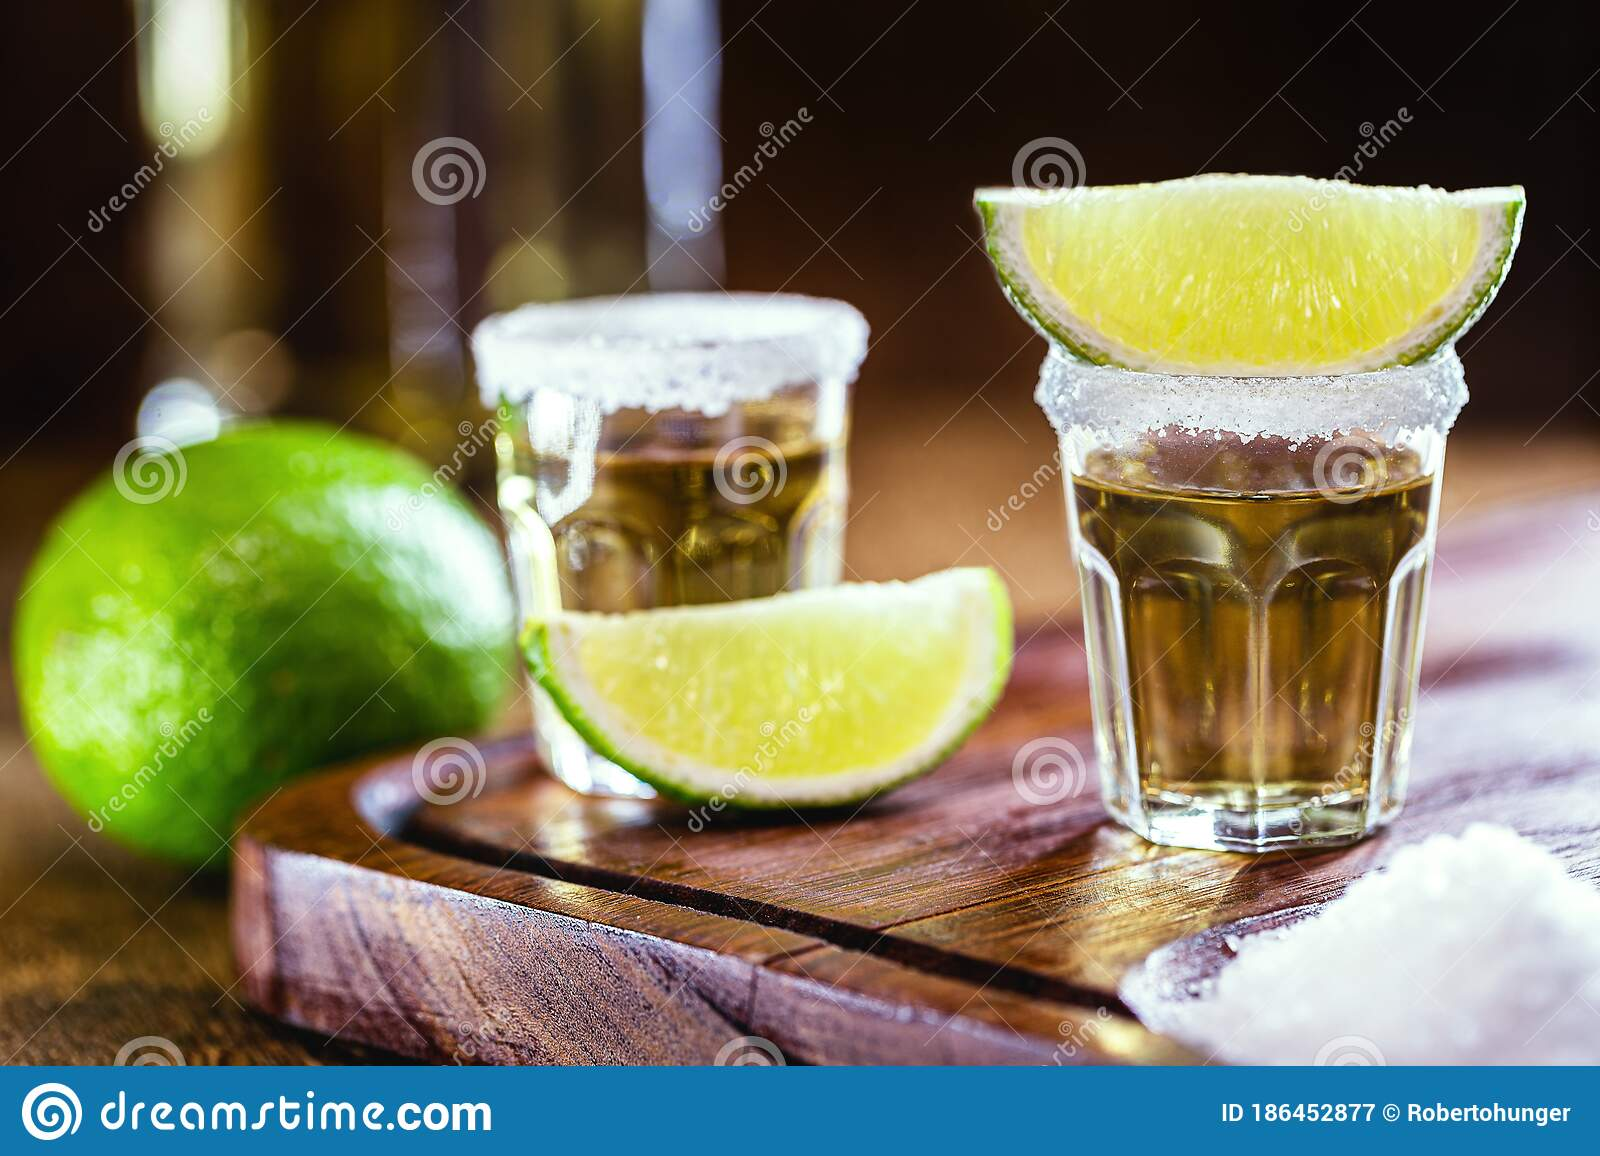 14 486 Lemon Tequila Photos Free Royalty Free Stock Photos From Dreamstime